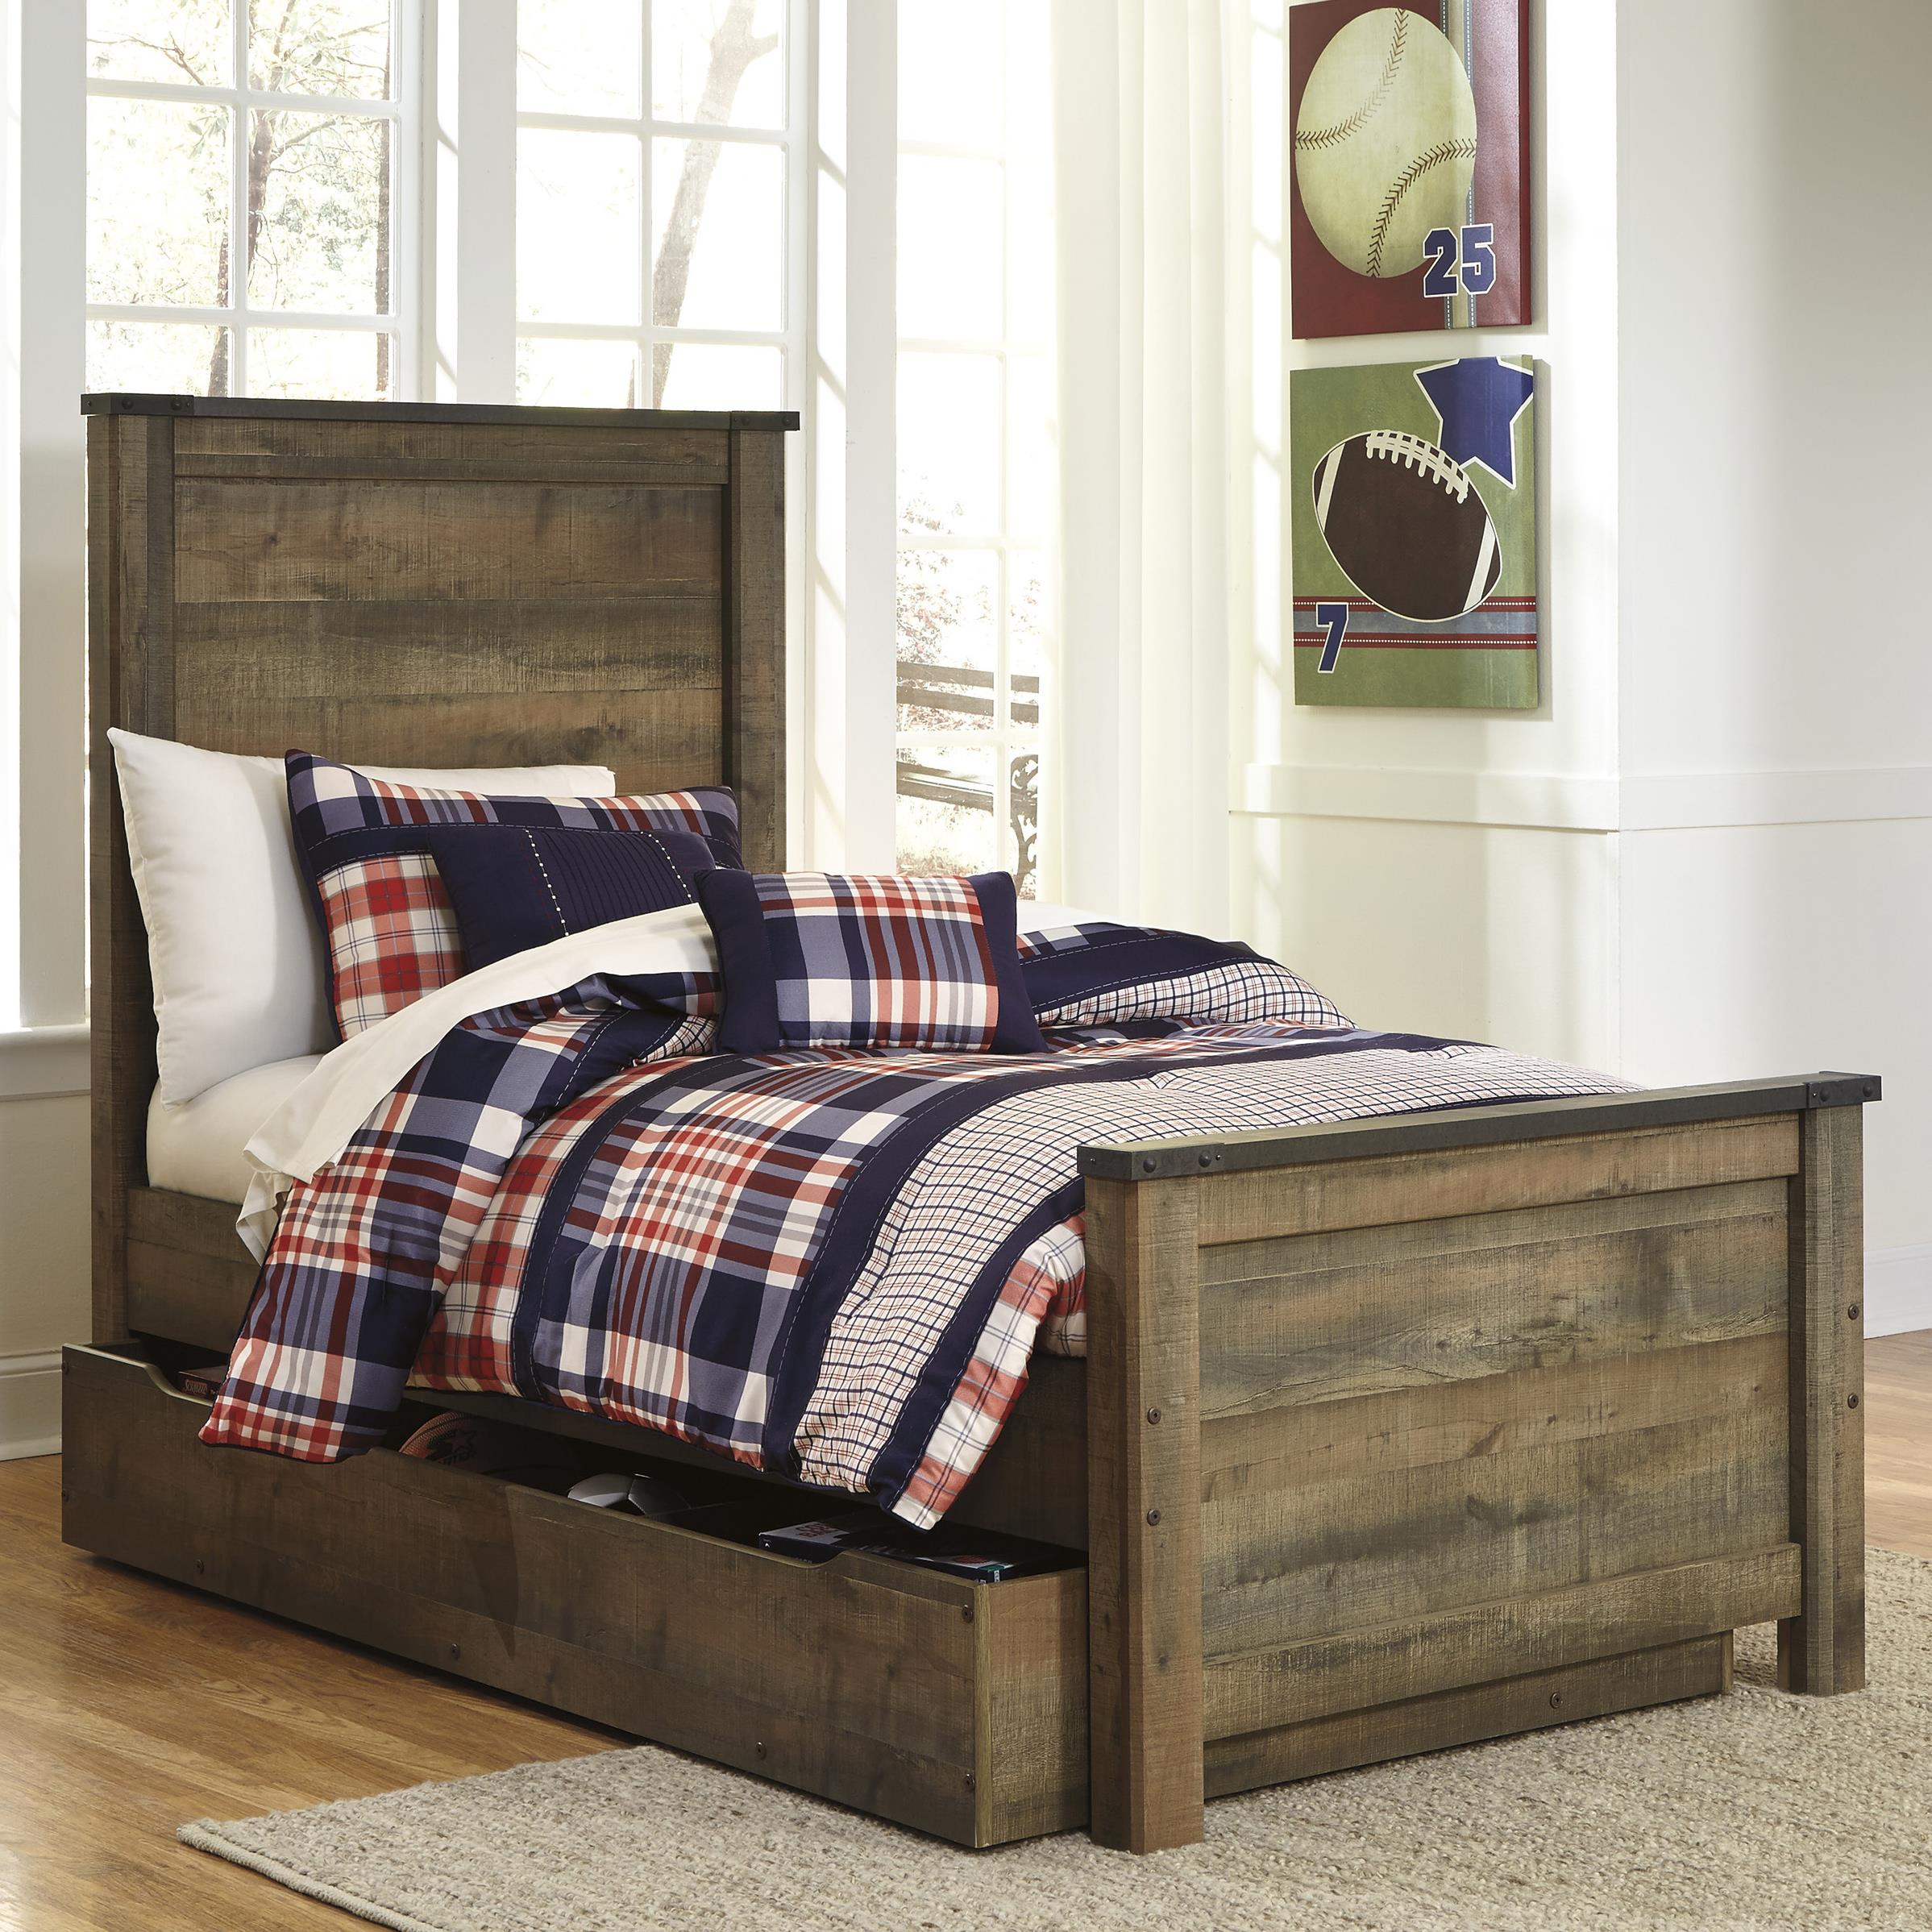 Under Bed Storage Frame Tate Rustic Look Twin Panel Bed With Under Bed Storage Trundle By Signature Design By Ashley At Rotmans